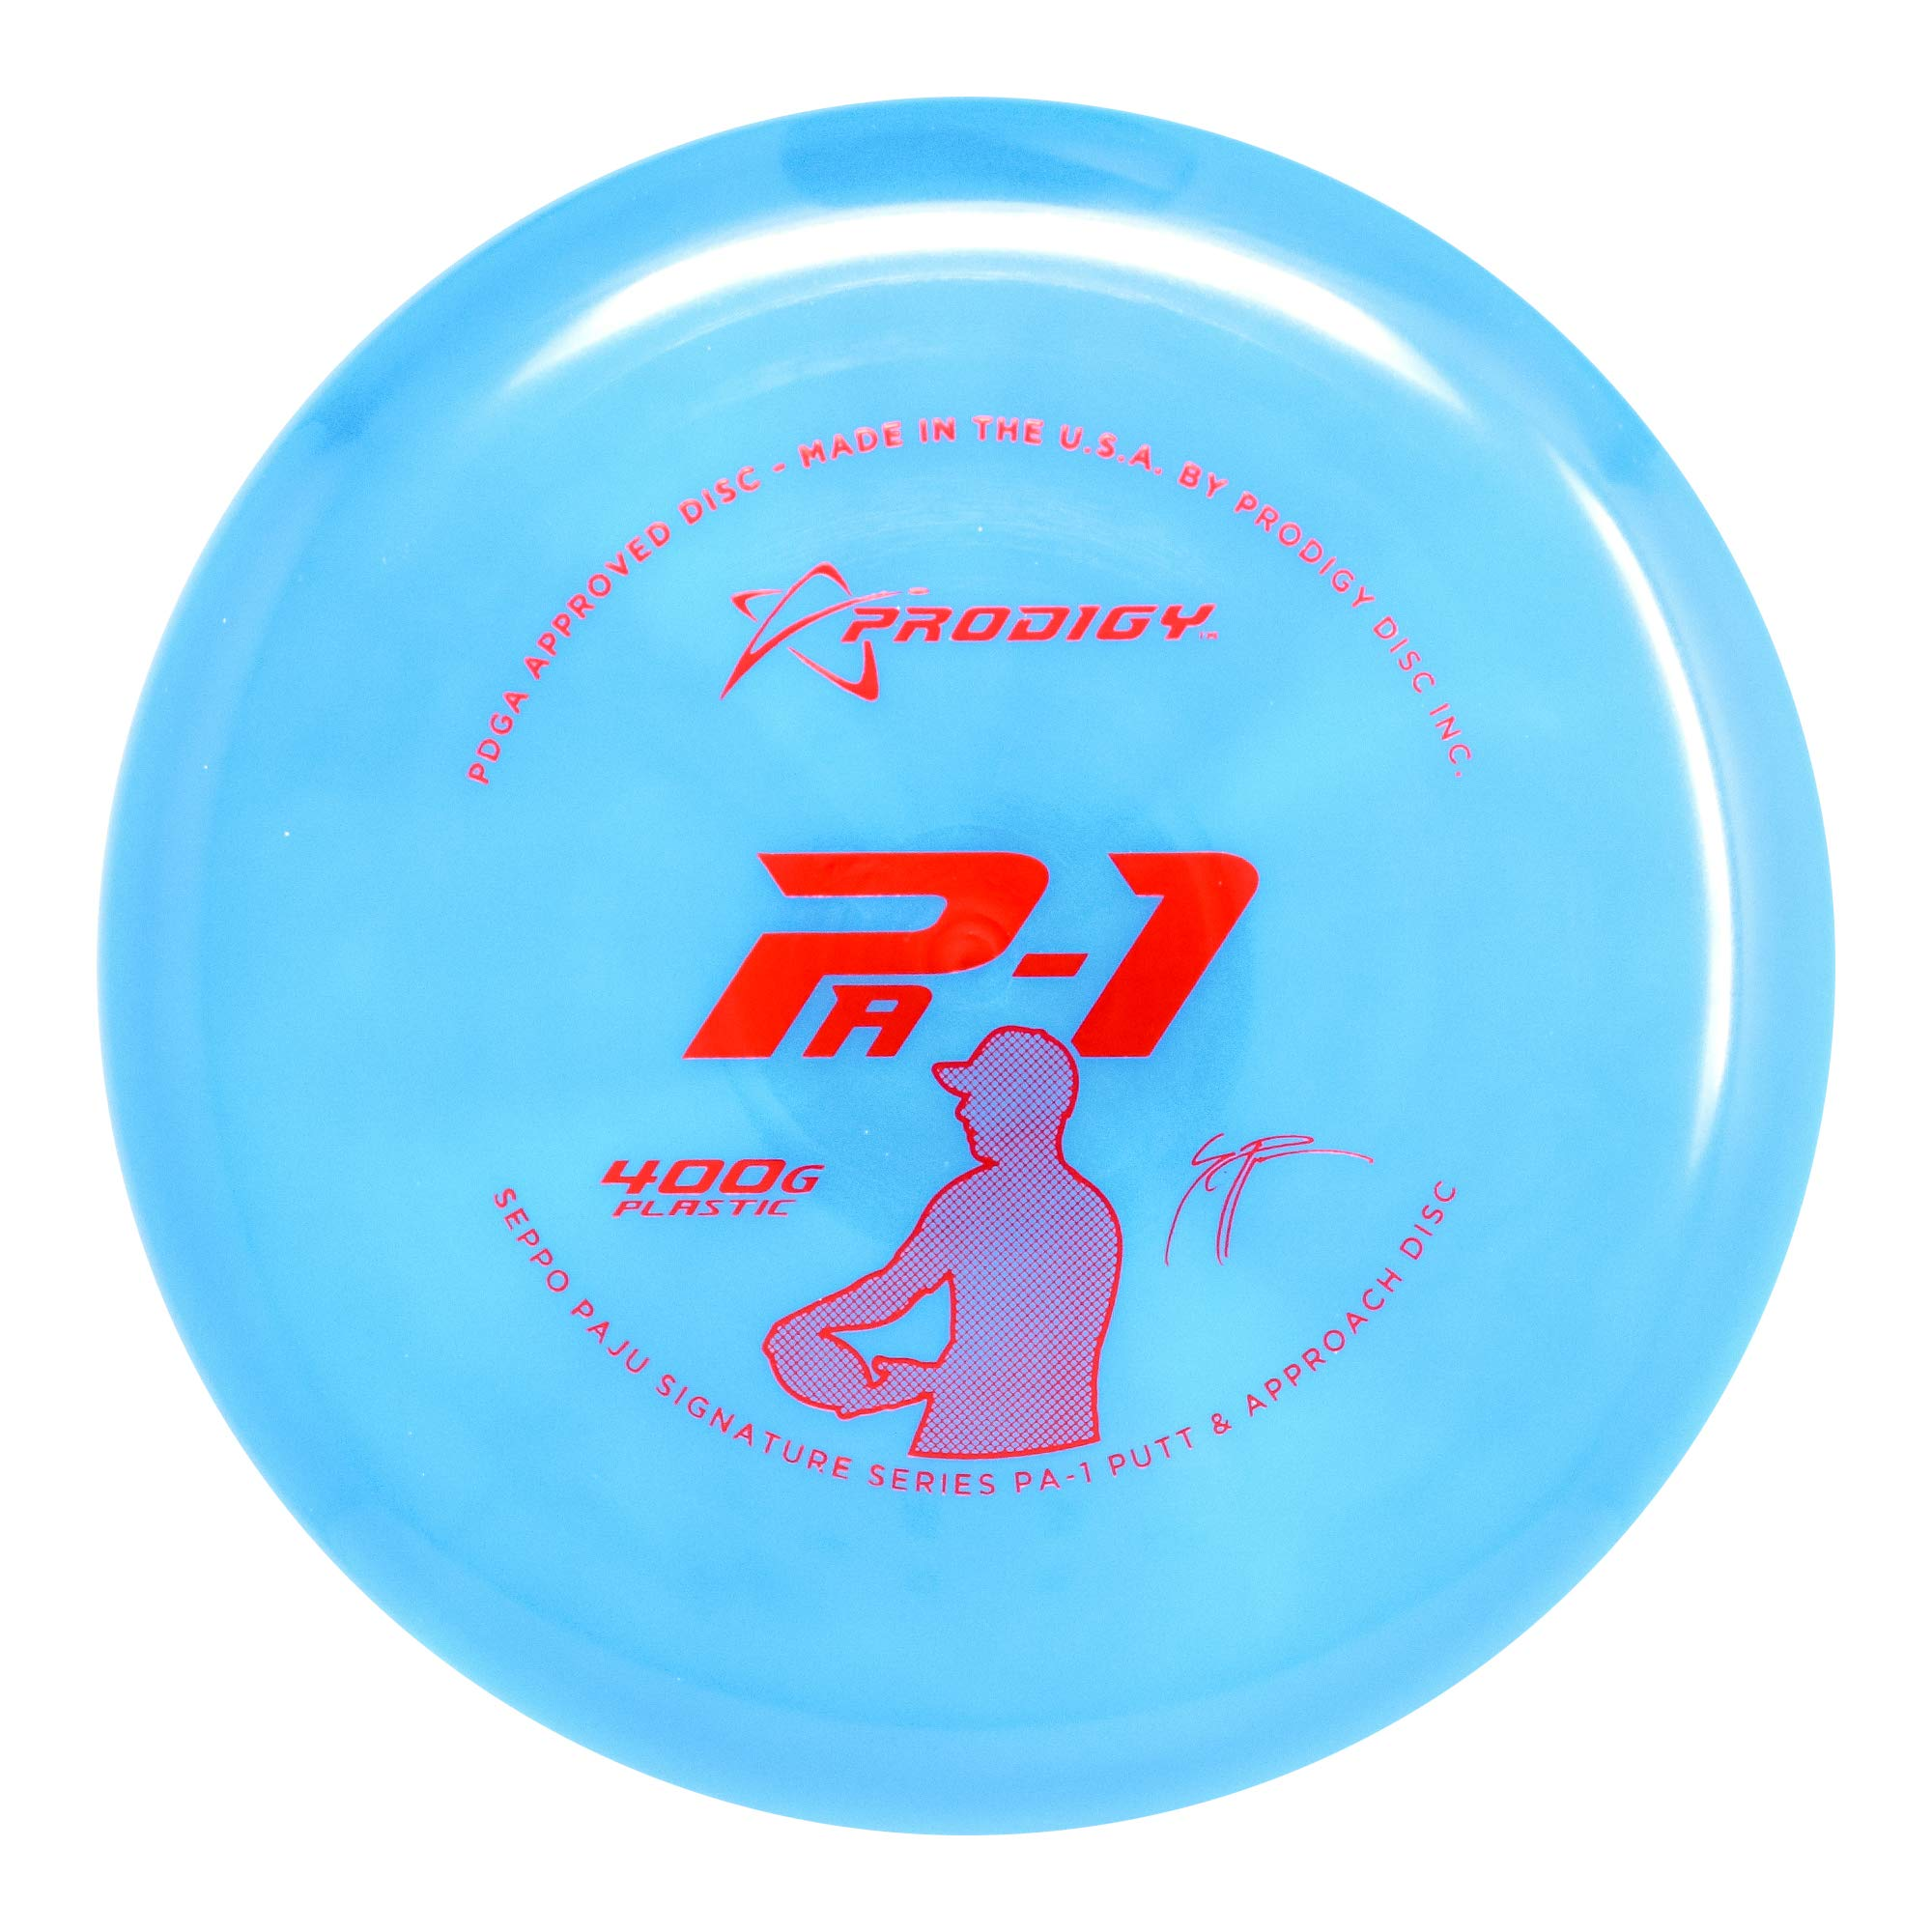 Prodigy Disc Limited Edition Signature Series Seppo Paju 400G Series PA1 Putter Golf Disc [Colors May Vary] - 170-174g